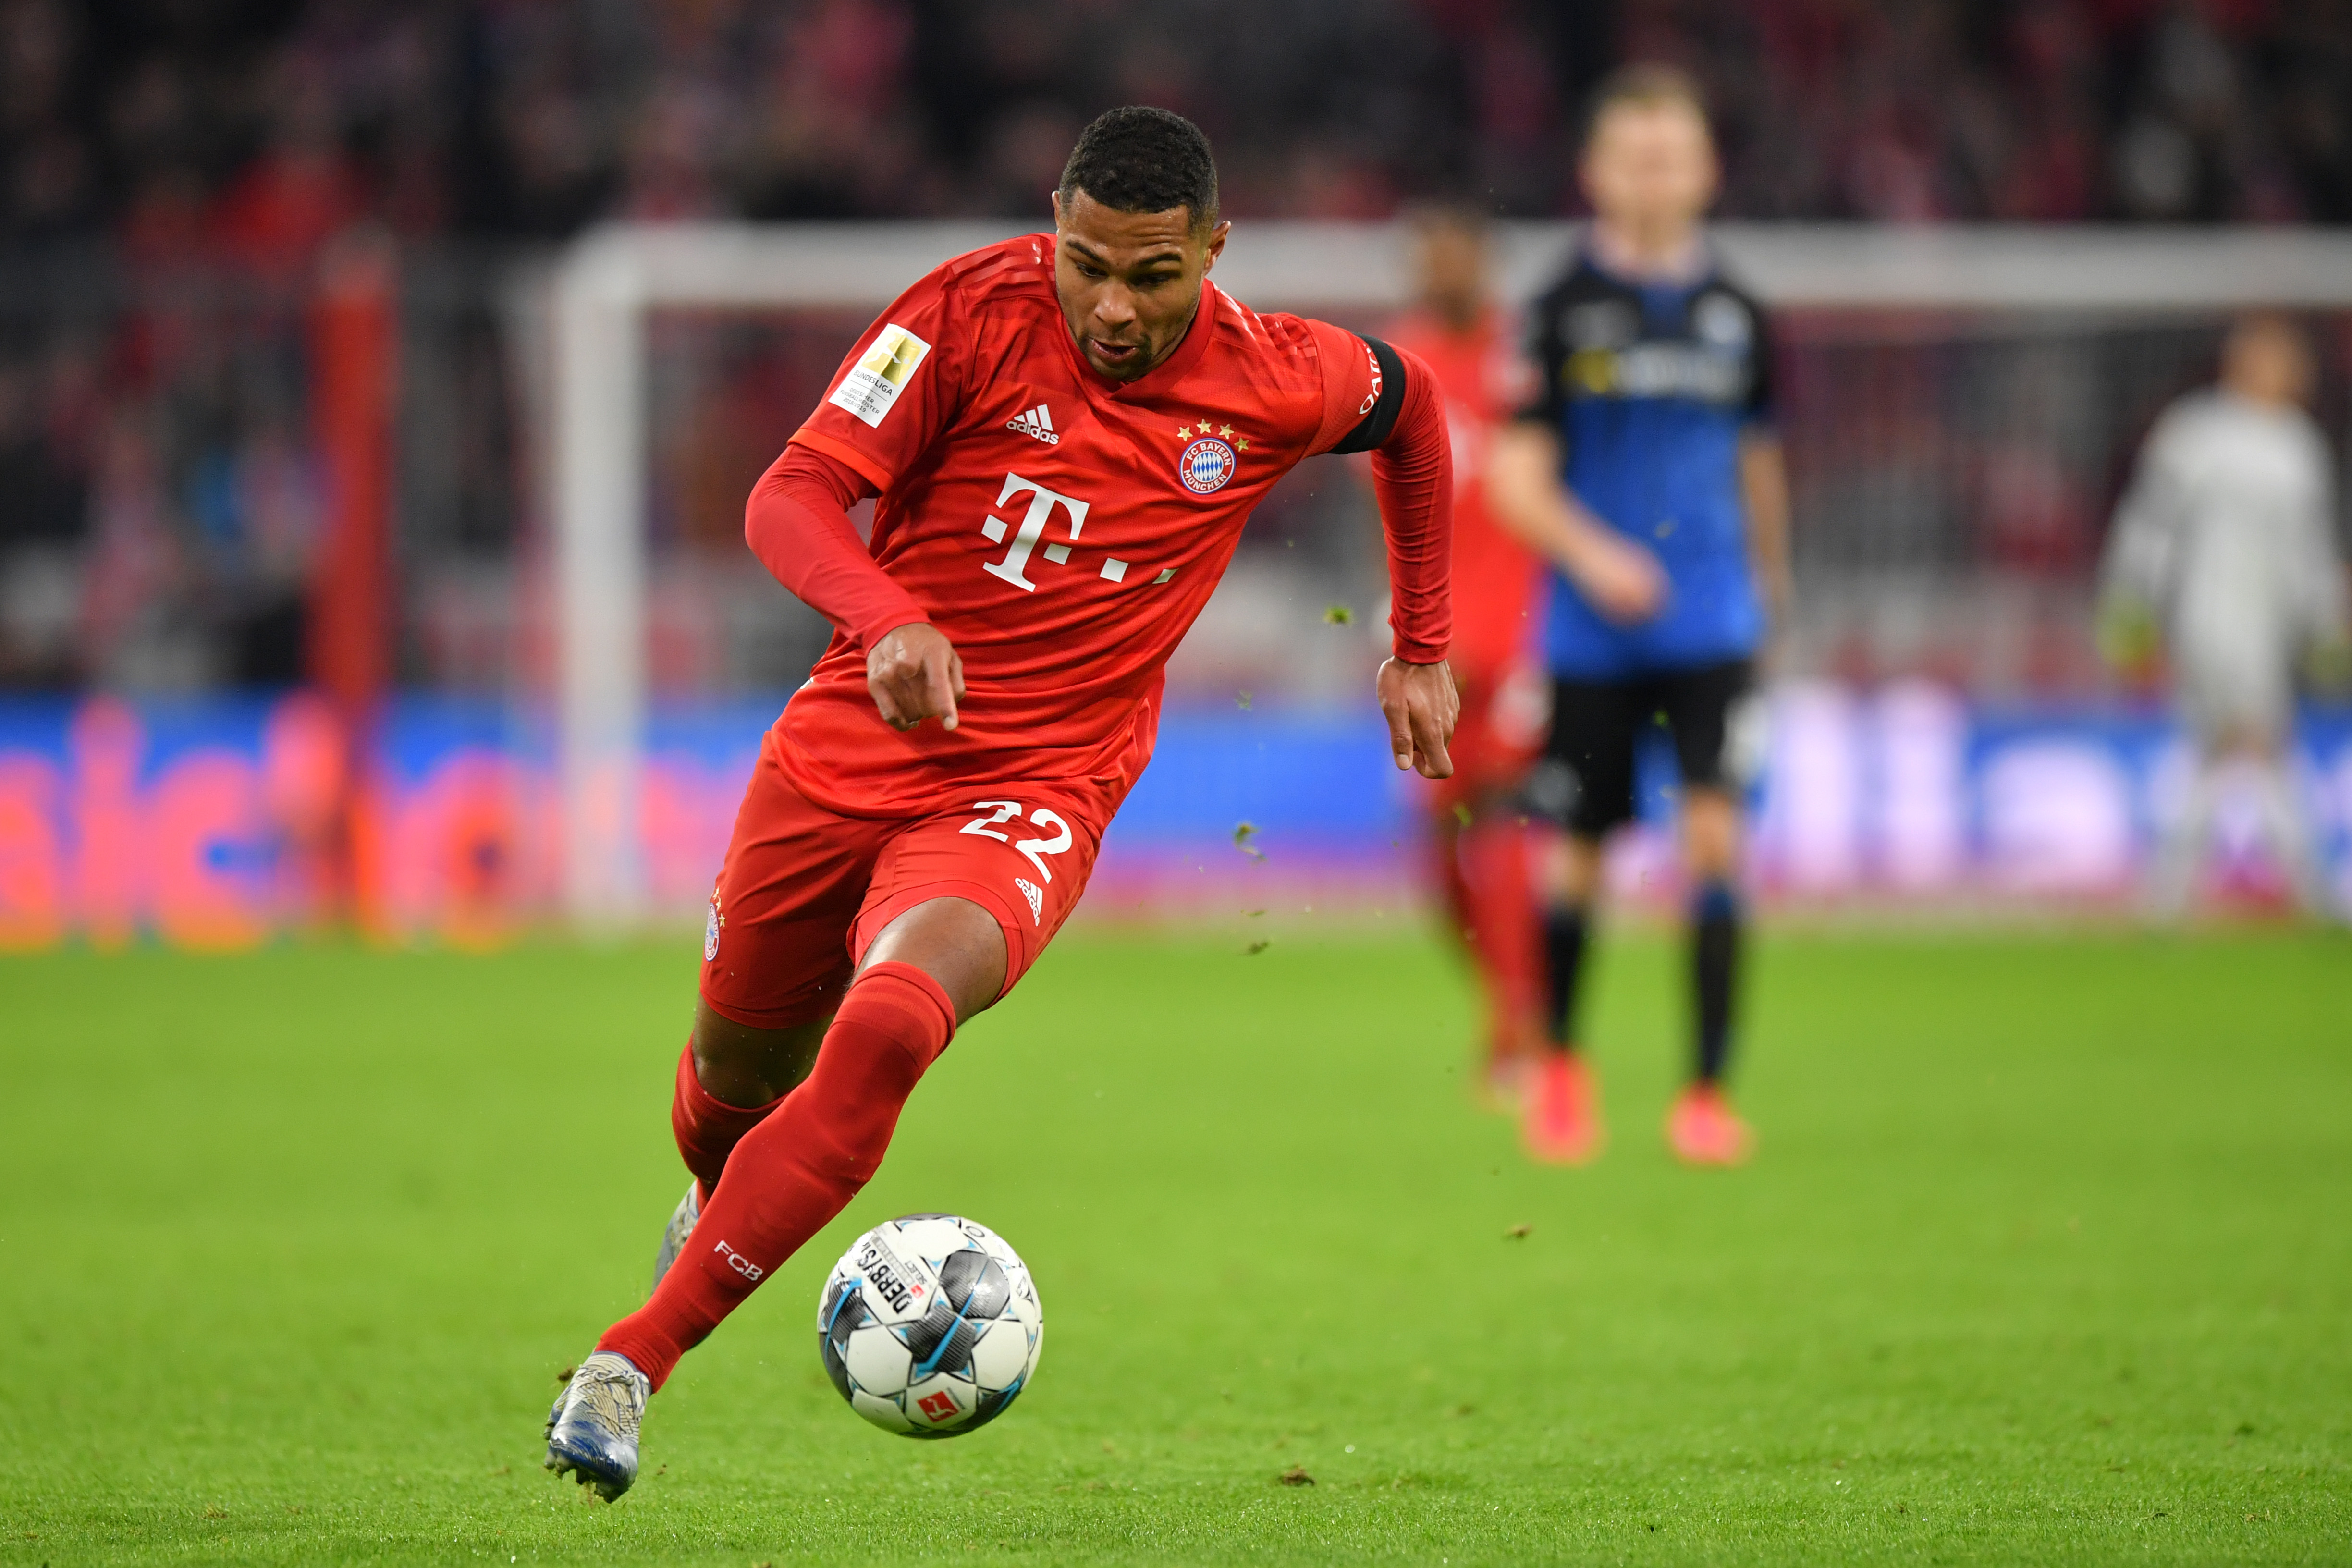 Can Chelsea handle the threat of Serge Gnabry? (Photo by Sebastian Widmann/Bongarts/Getty Images)